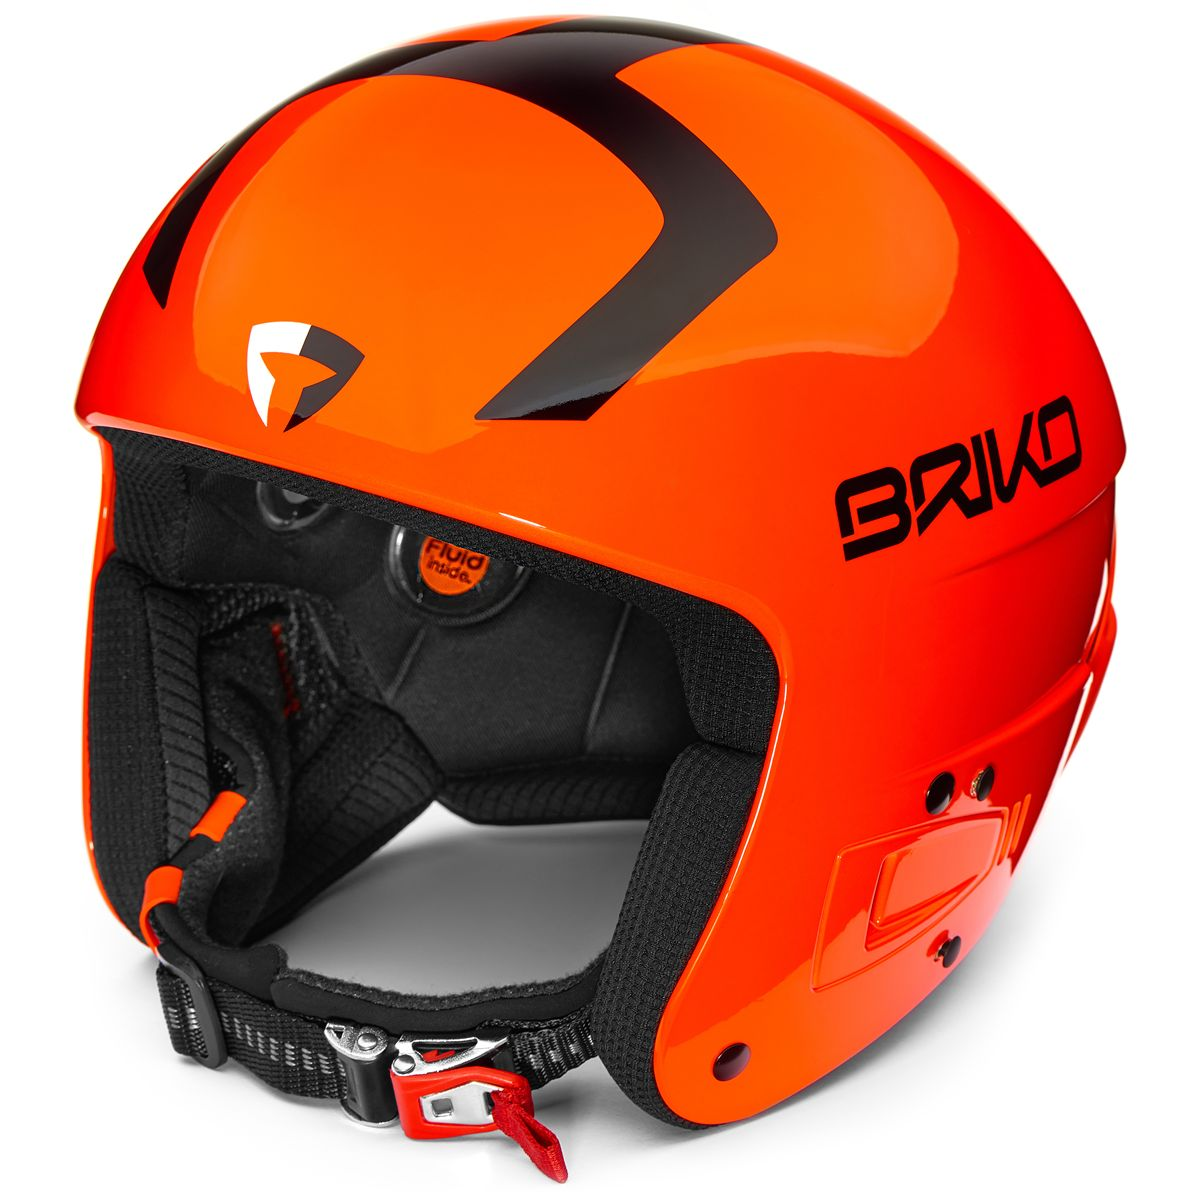 Briko HELMETS VULCANO FIS 6.8 - FLUID INSIDE Junior Boy Girl Helmet